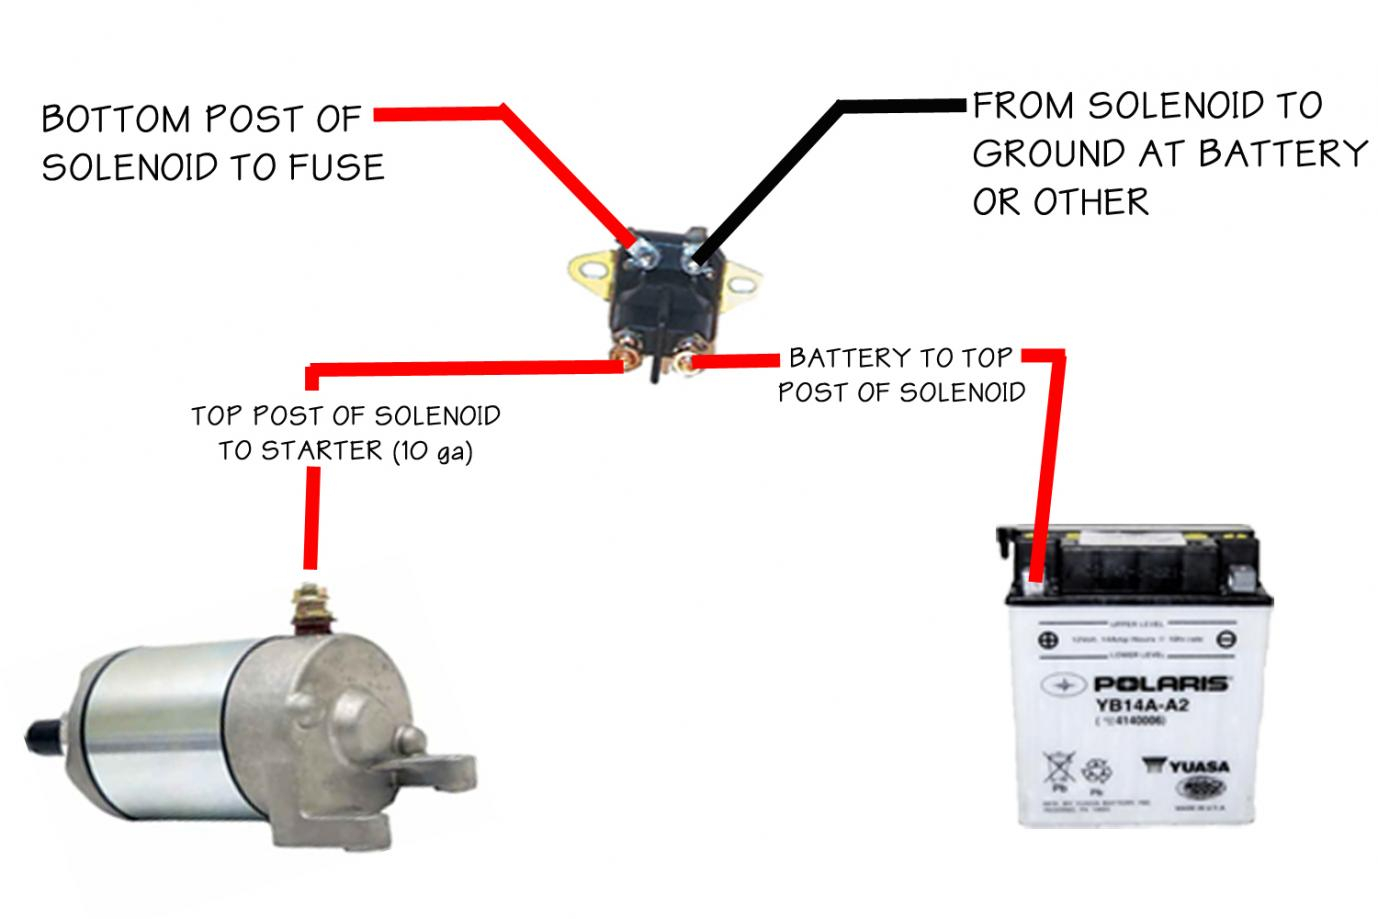 4 pole starter solenoid wiring diagram Download-Starter Solenoid Wiring Diagram For Lawn Mower 1 1-h